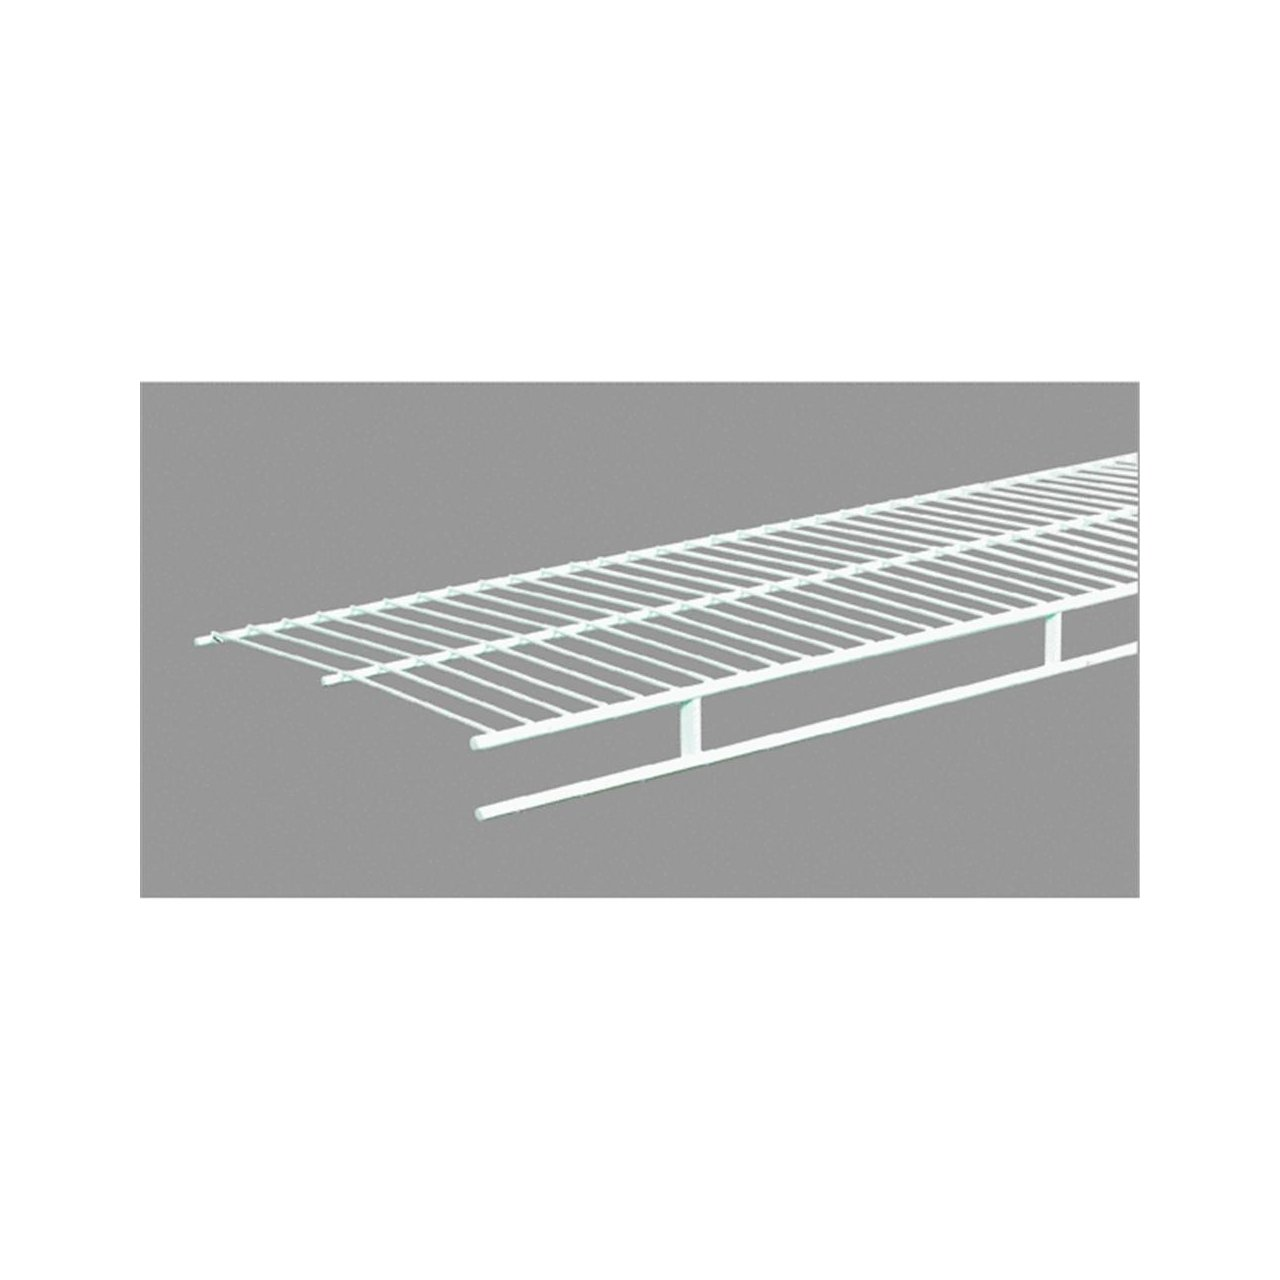 Amazon.com: ClosetMaid 1361 Shelf And Rod 6ft. By 12in. Wire Shelf, White:  Home U0026 Kitchen